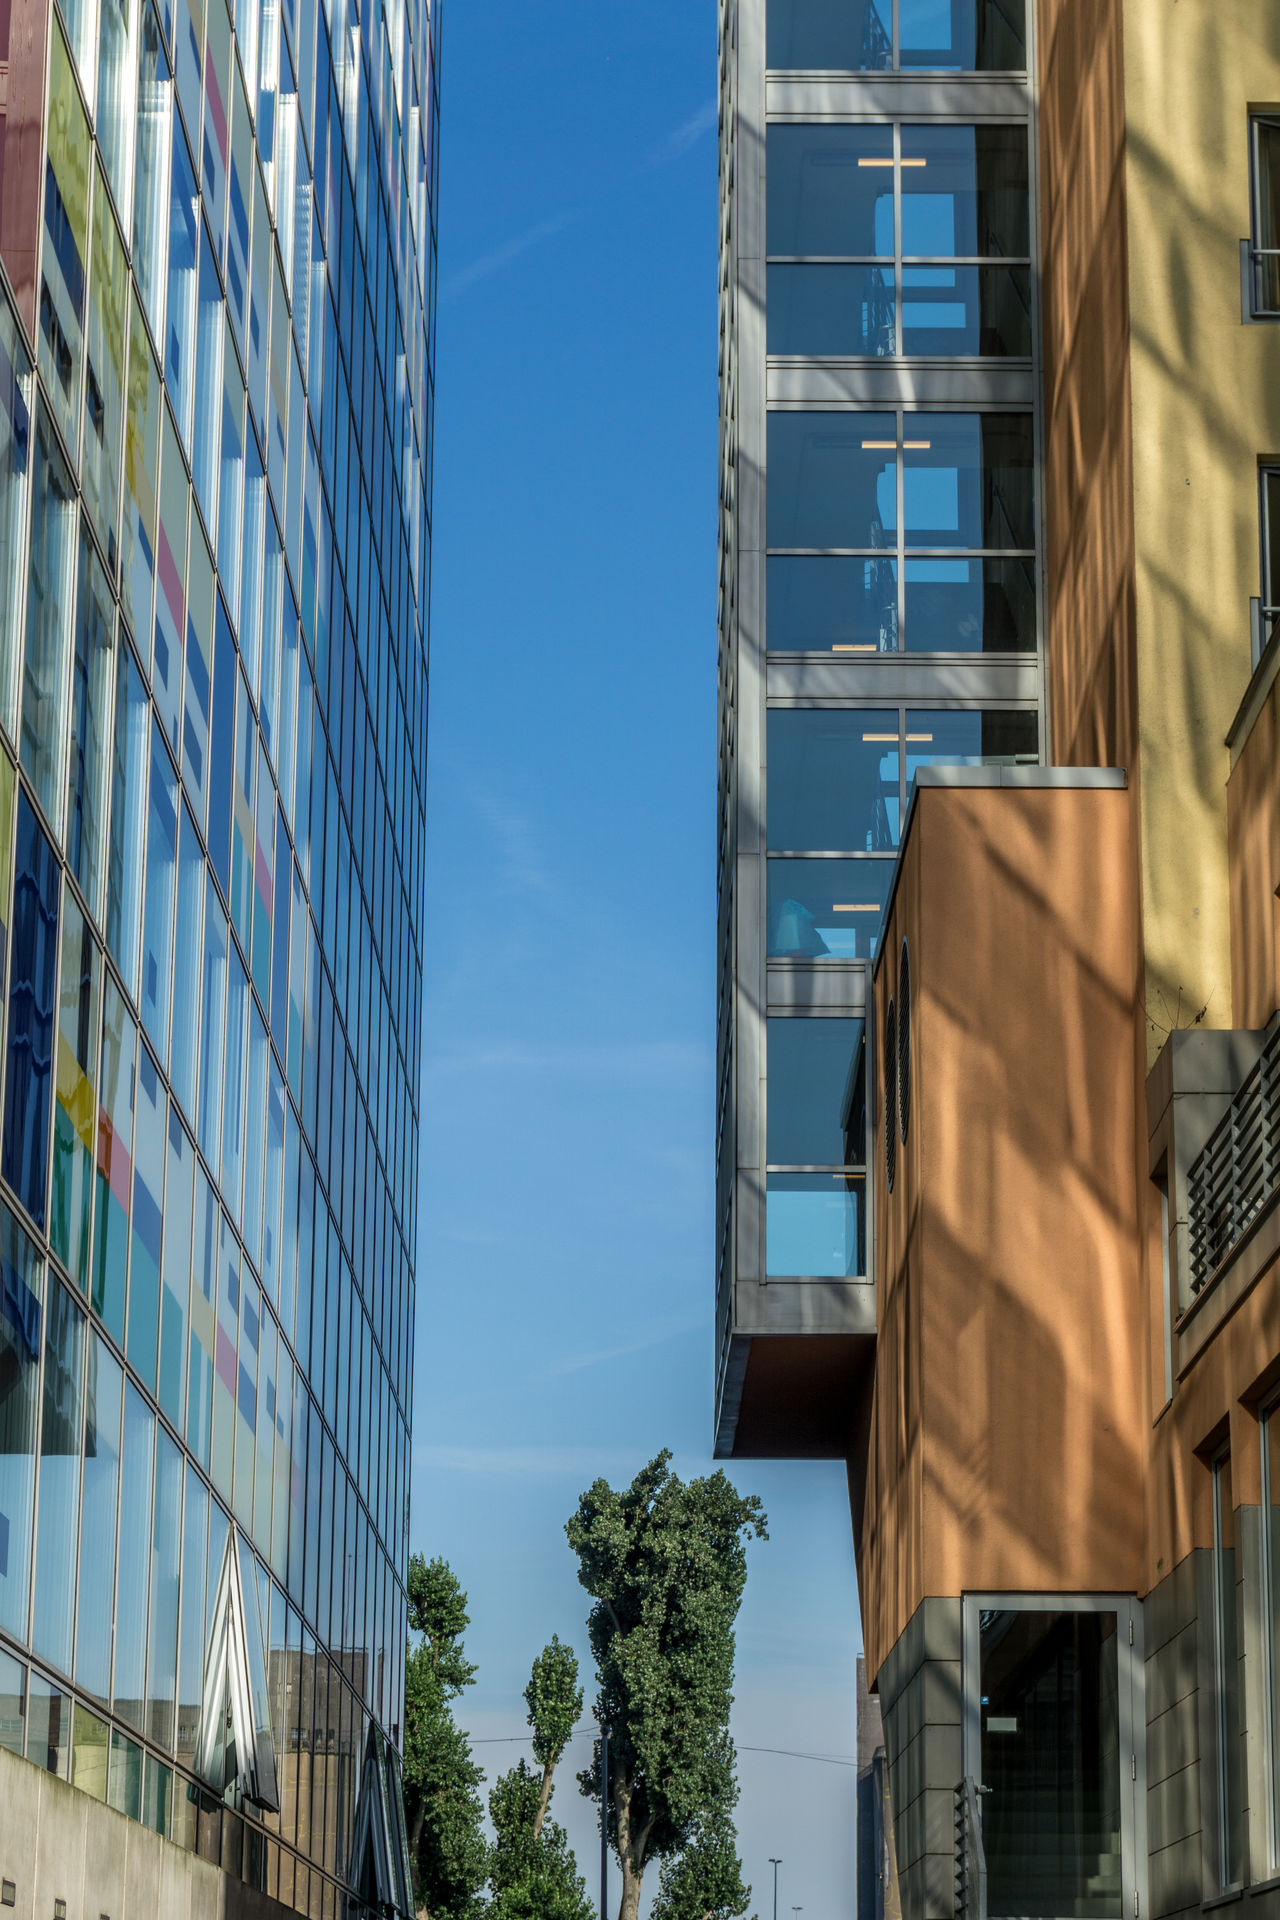 Beautiful stock photos of glas, building exterior, built structure, architecture, outdoors